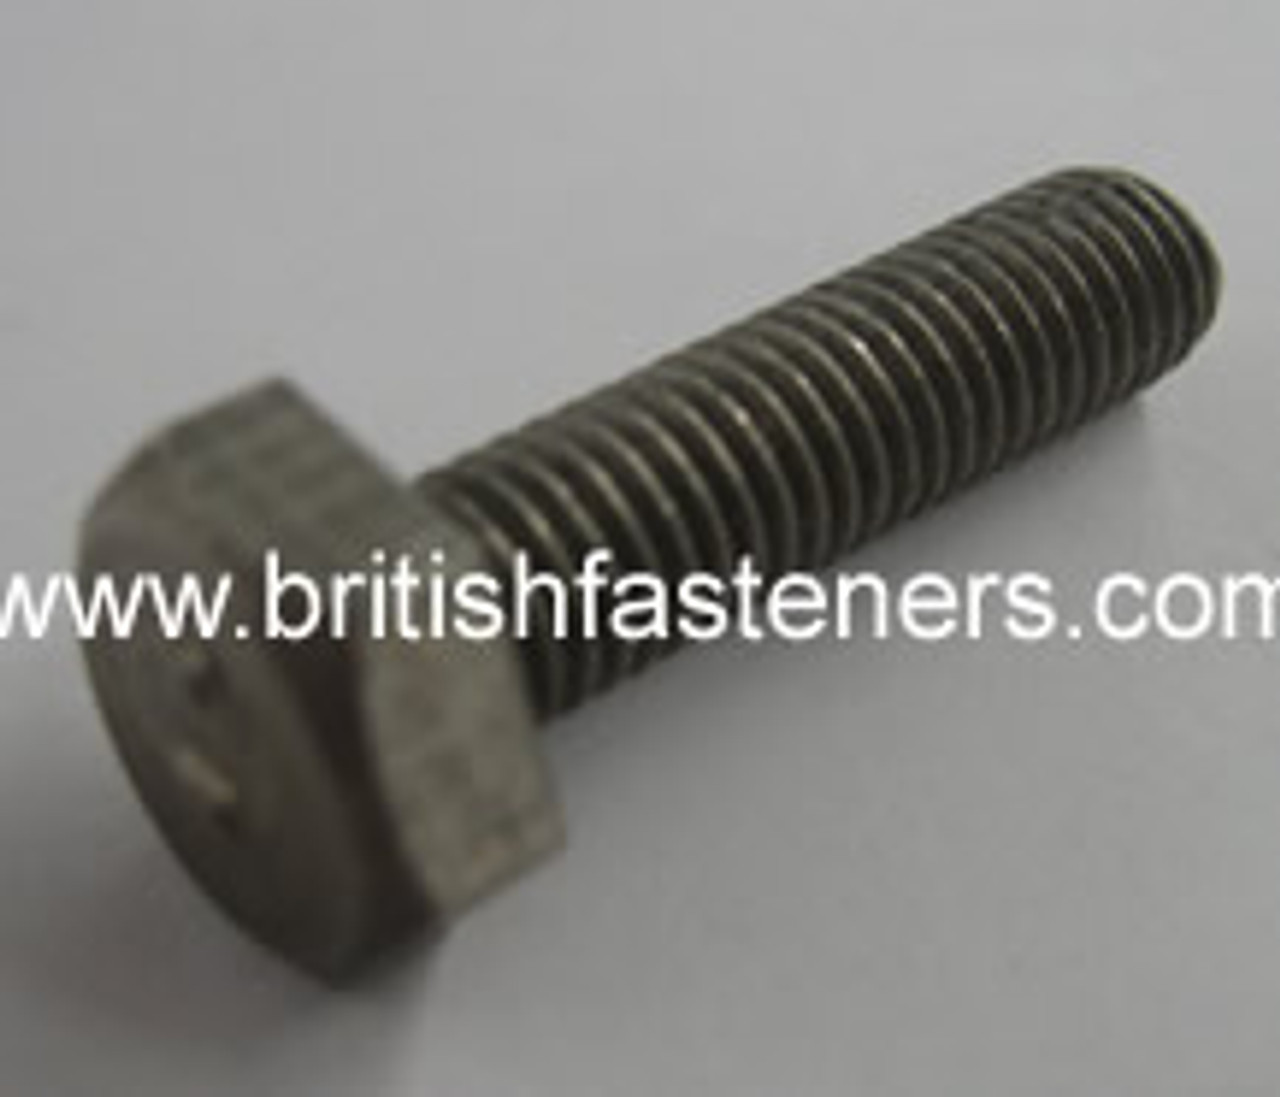 "Stainless Screw BSF/BSC Hex 1/4 x 3/4"" - (6325)"